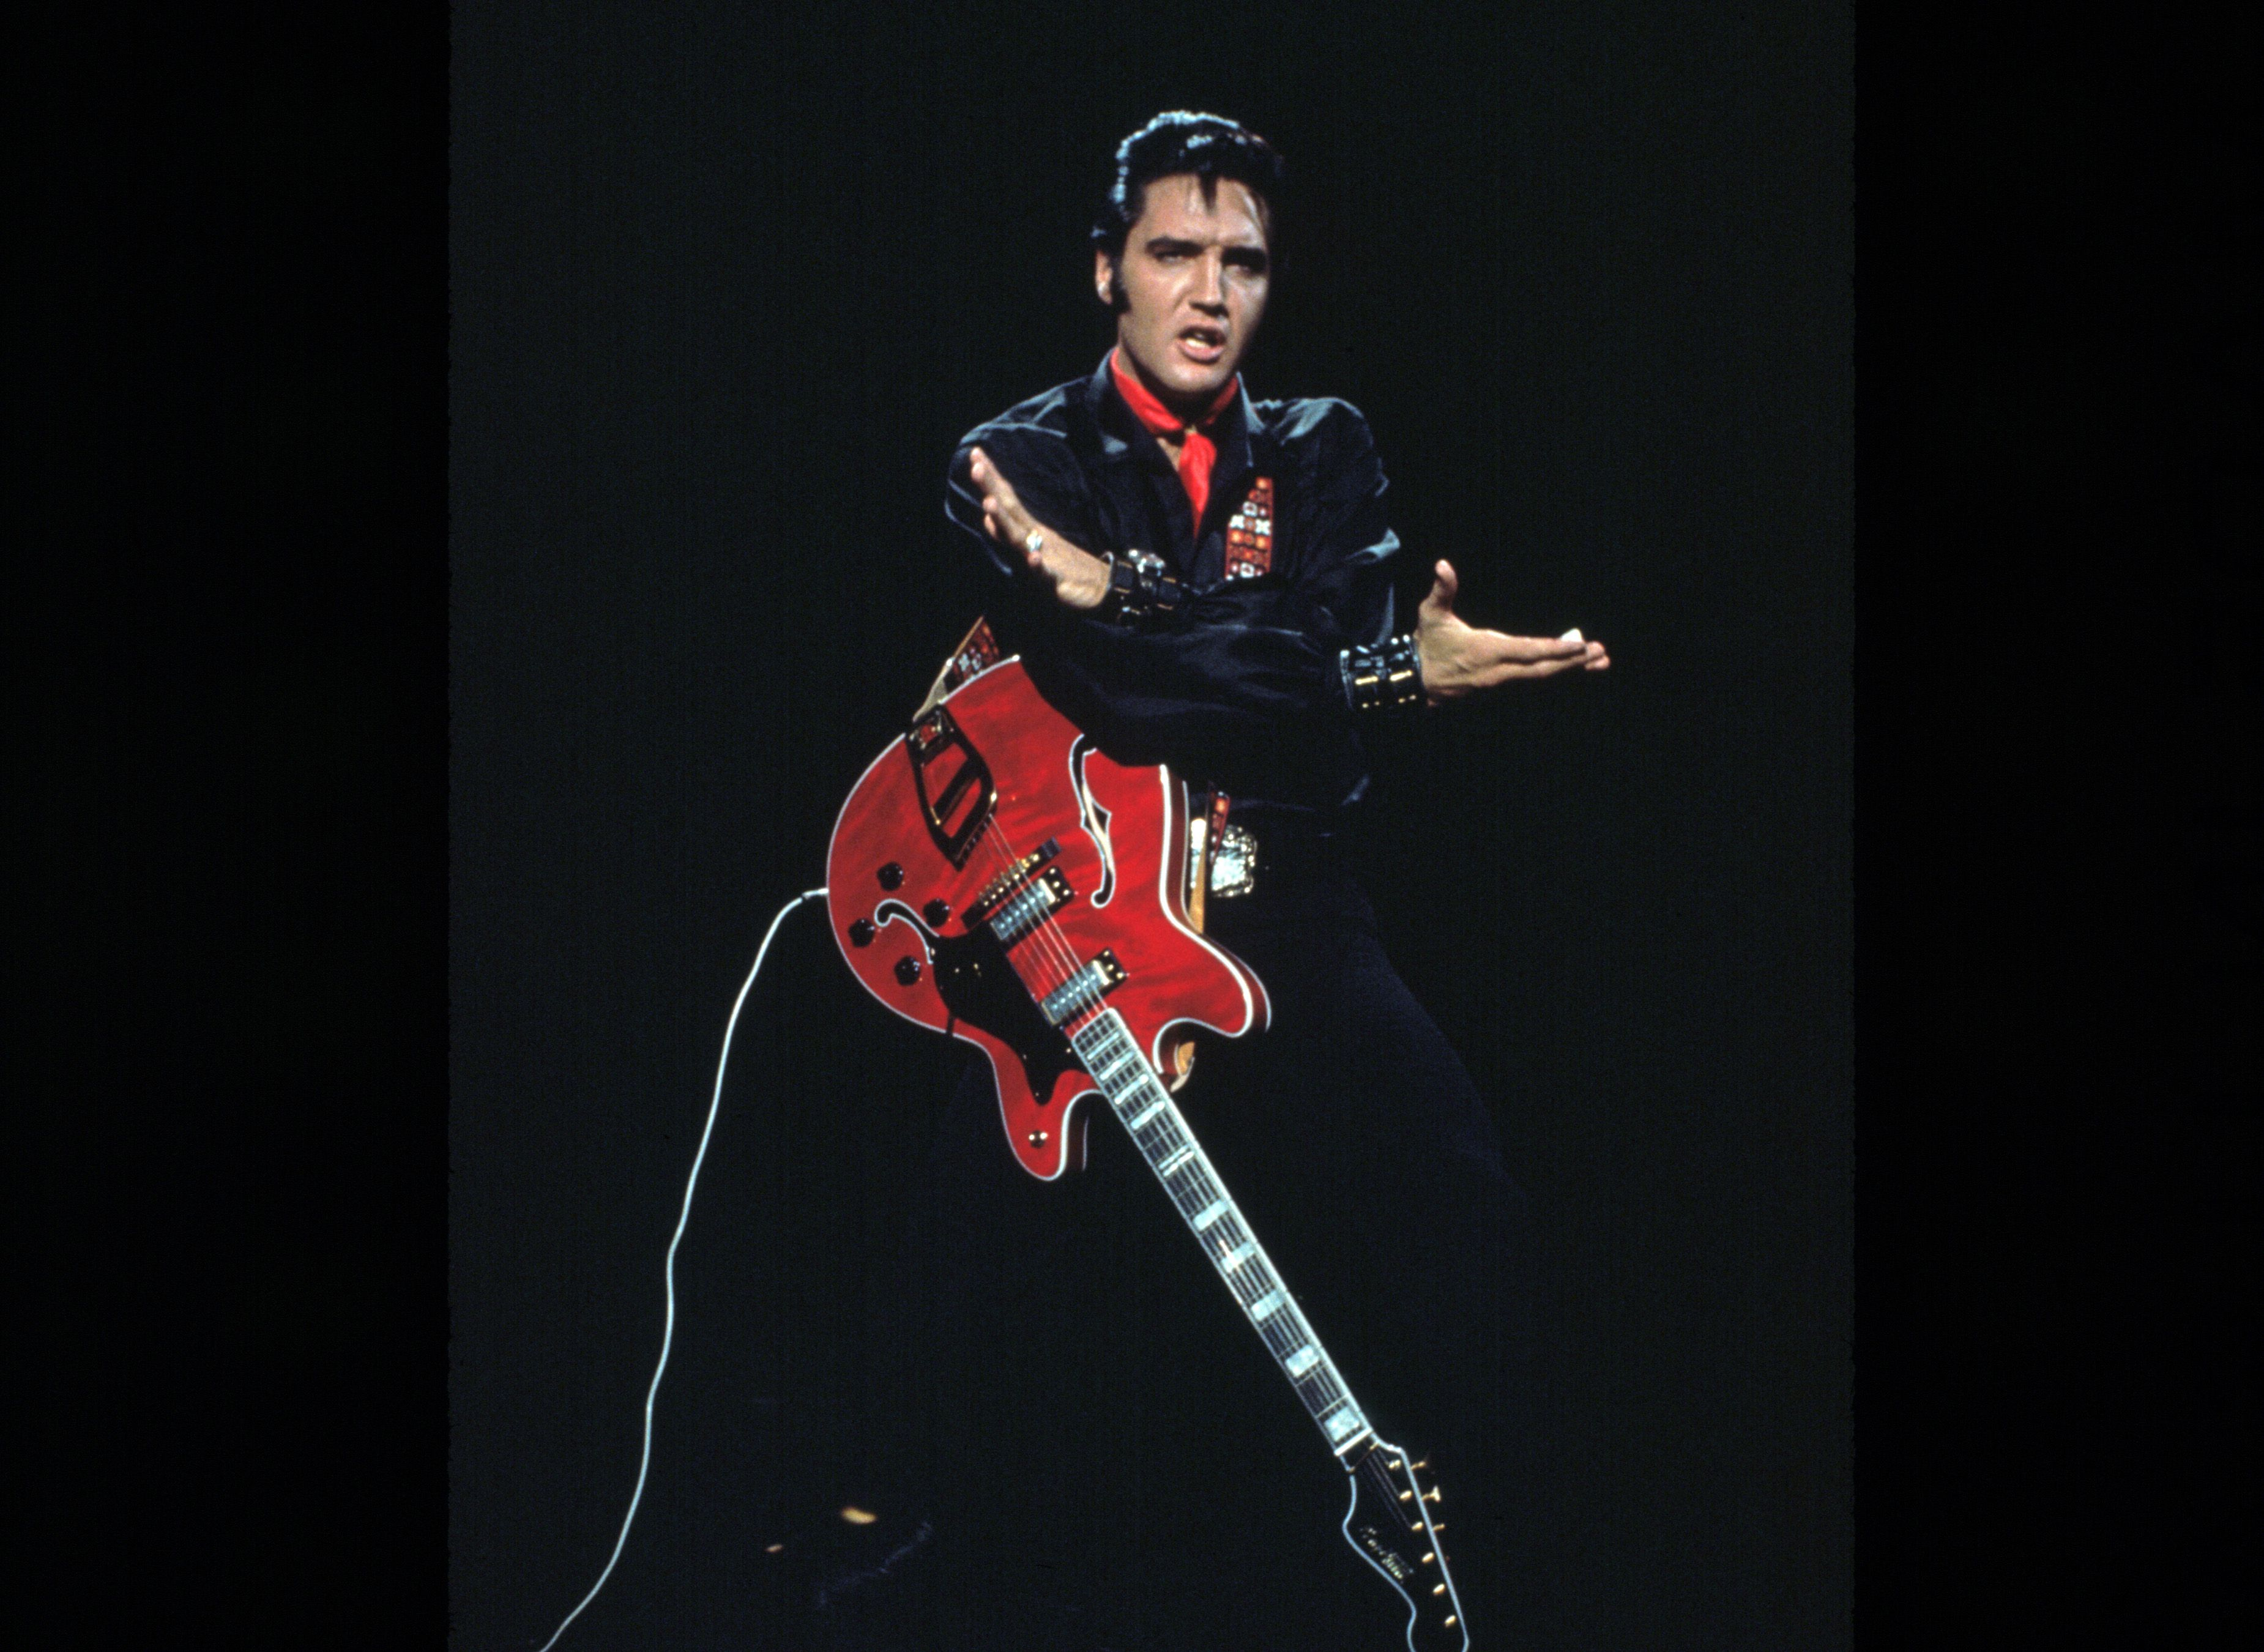 Elvis Presleys 68 Comeback Special To Be Released In New Box Set